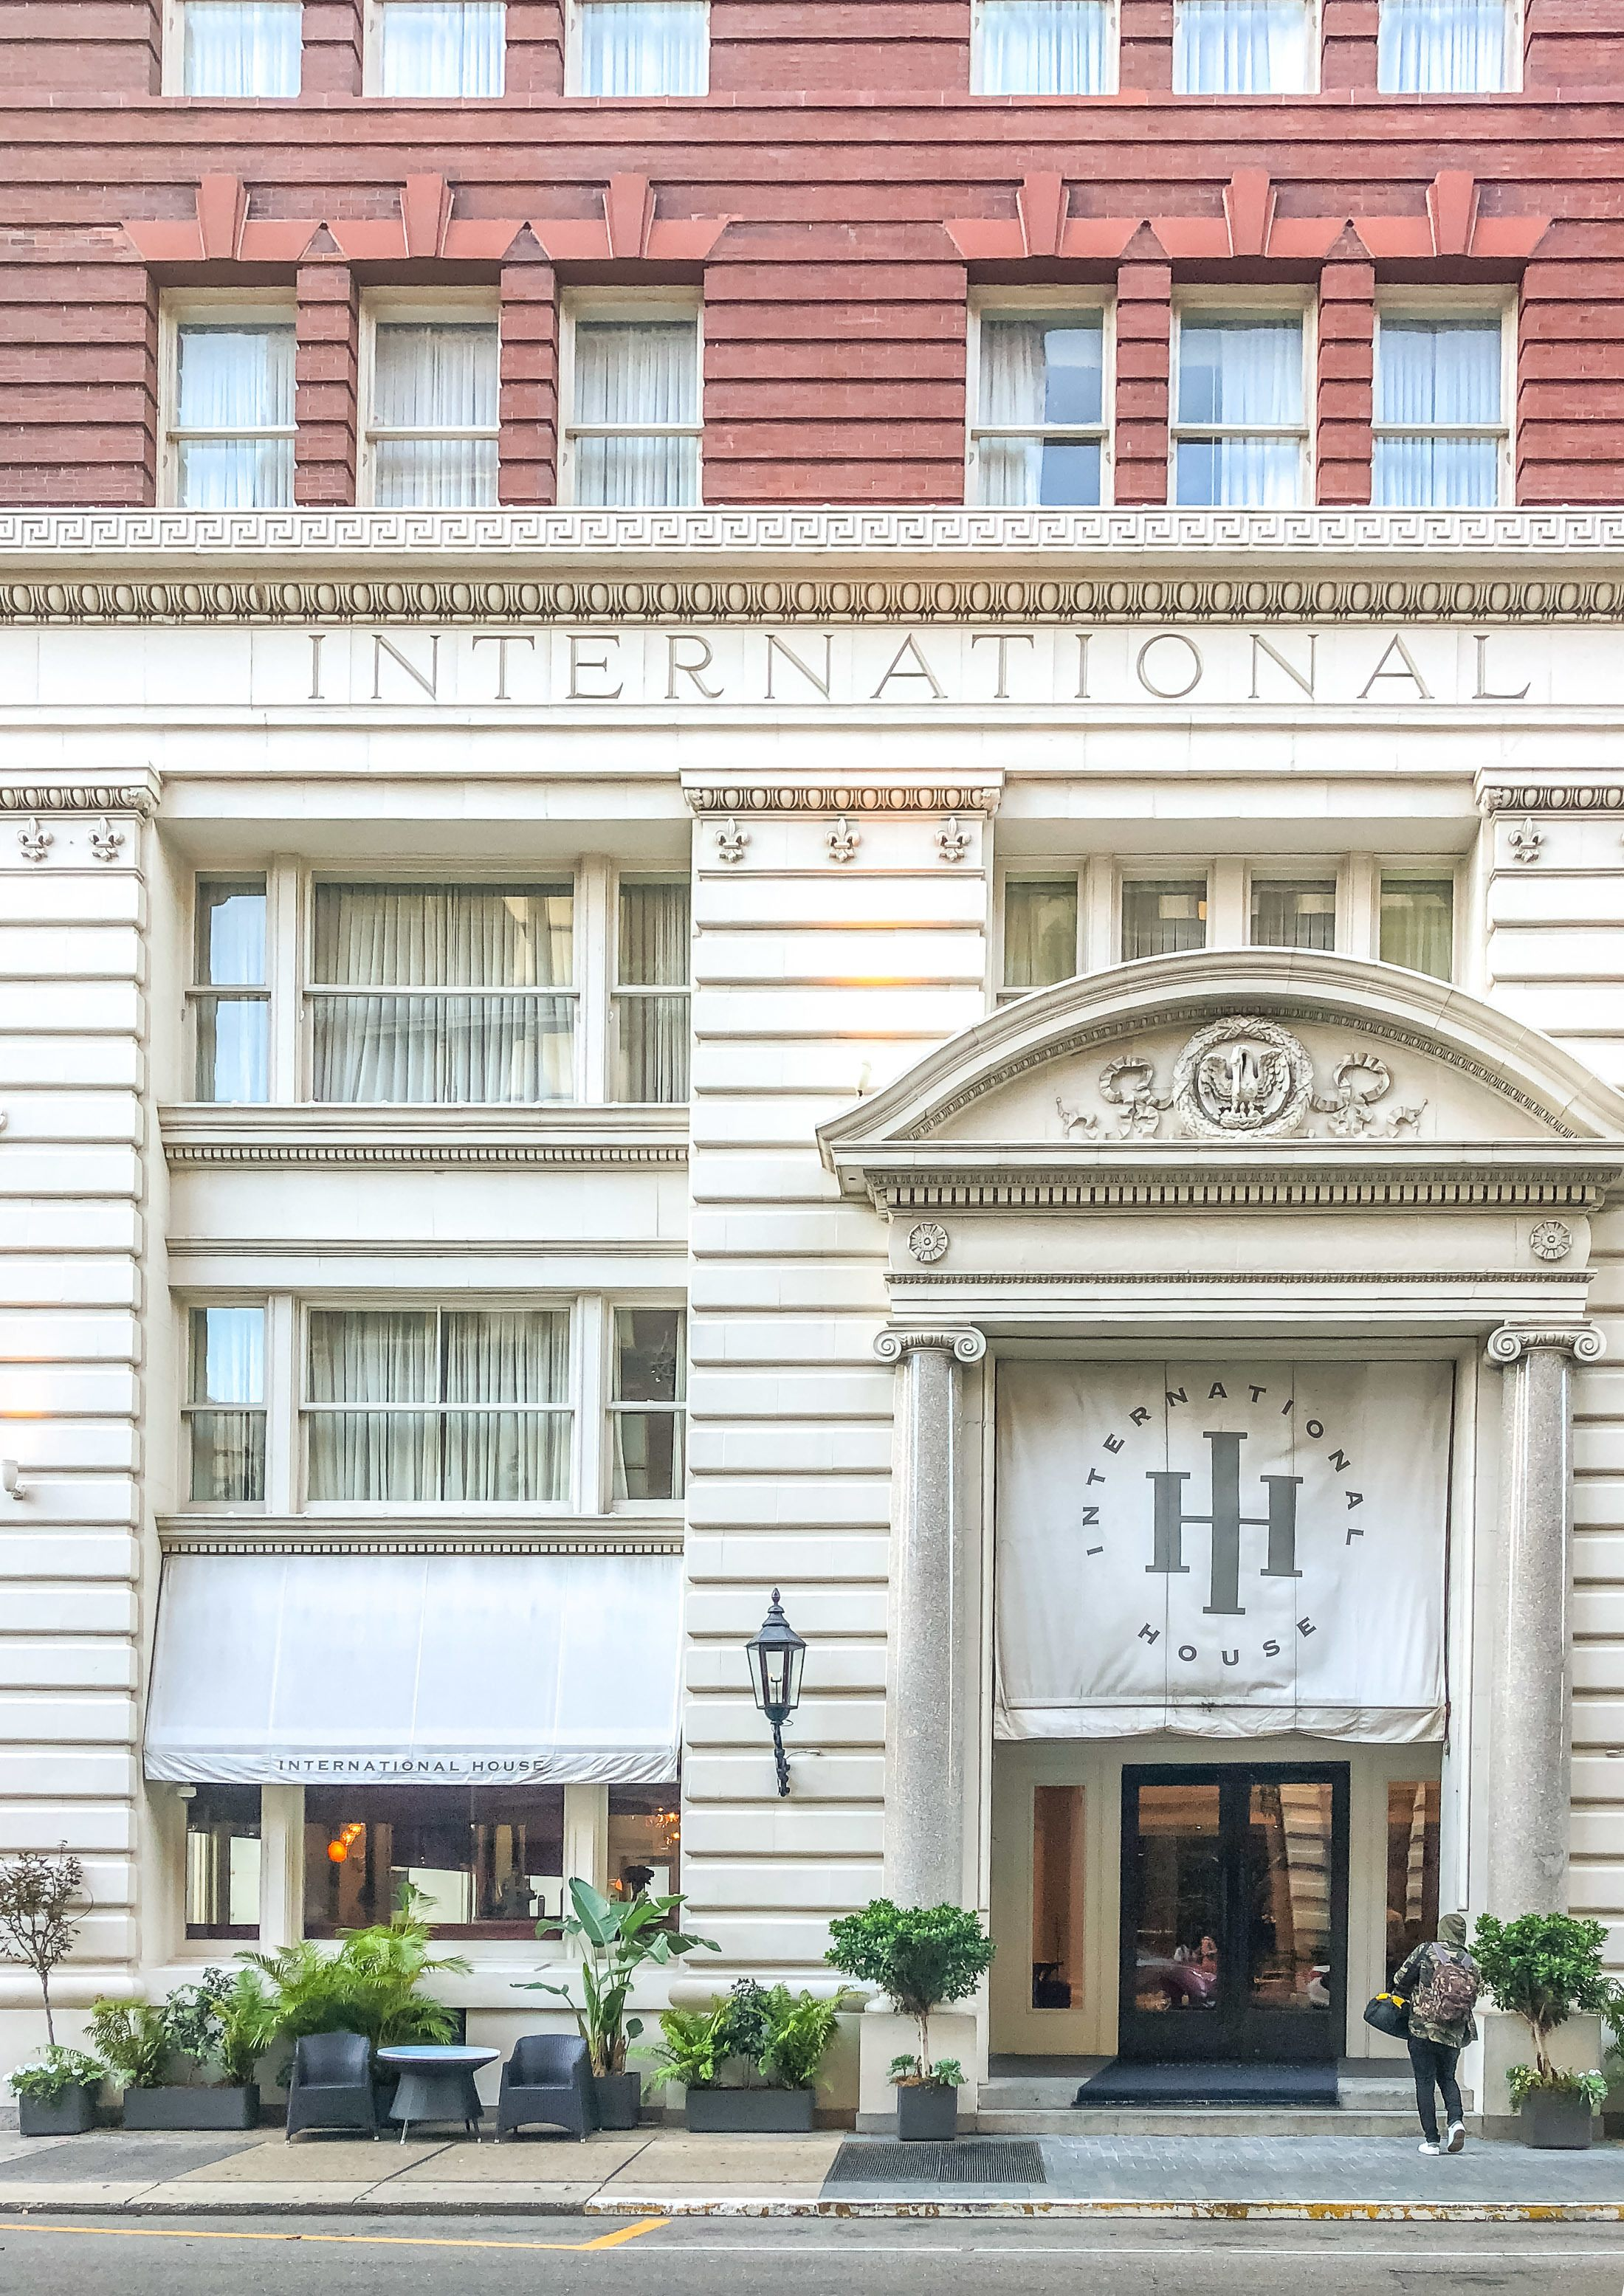 The international house new orleans review best new for Best boutique hotels in la